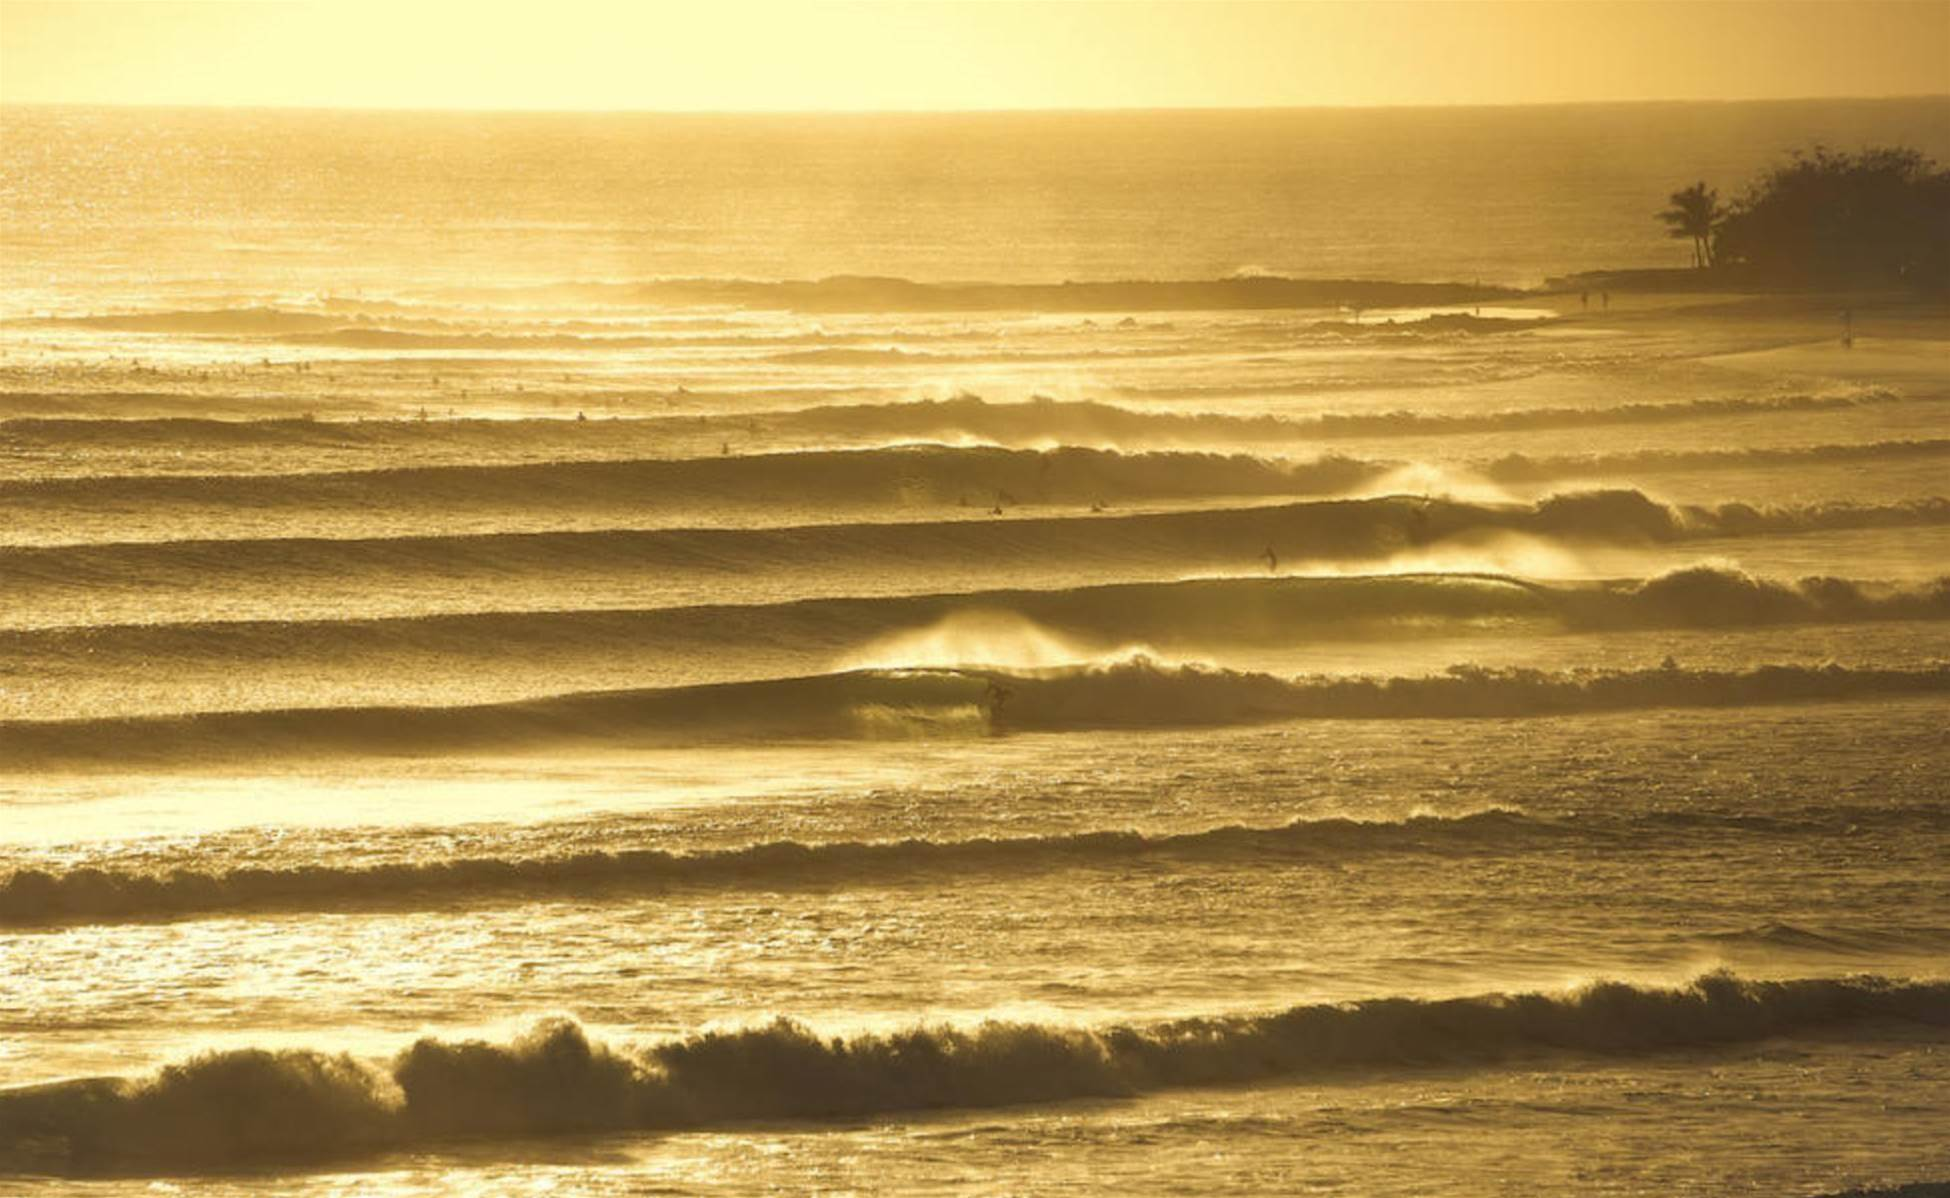 Are We Really Here Already? Quiksilver Pro Gold Coast